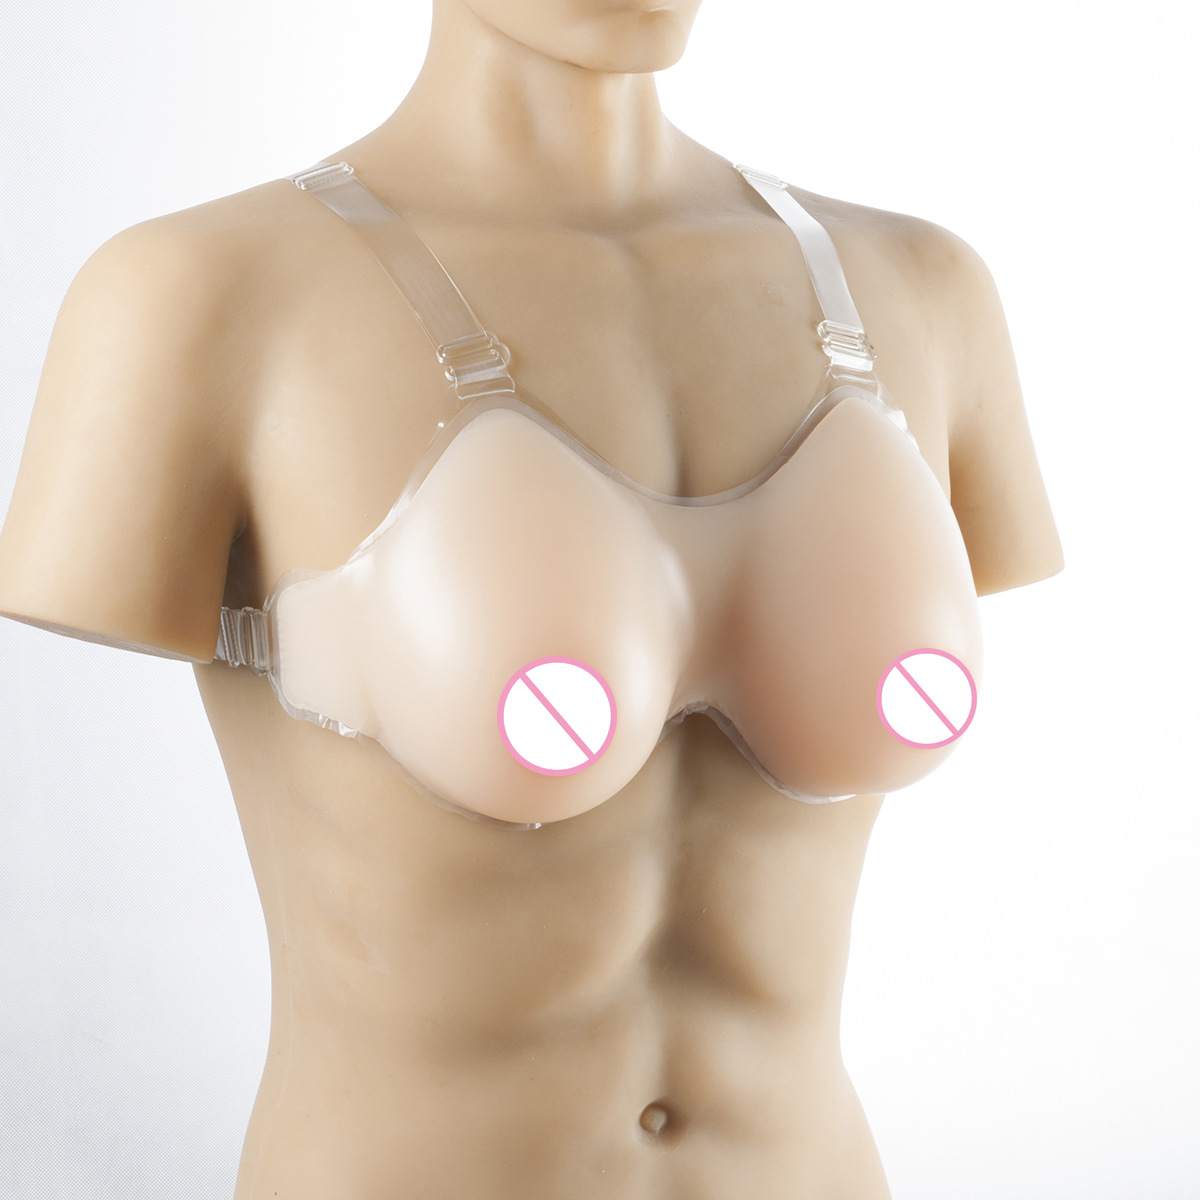 Buy 500g Cup Silicone Breast Forms Realistic Strap Fake Boobs Cosplay False Breasts Bust Enhancer Crossdresser Size S